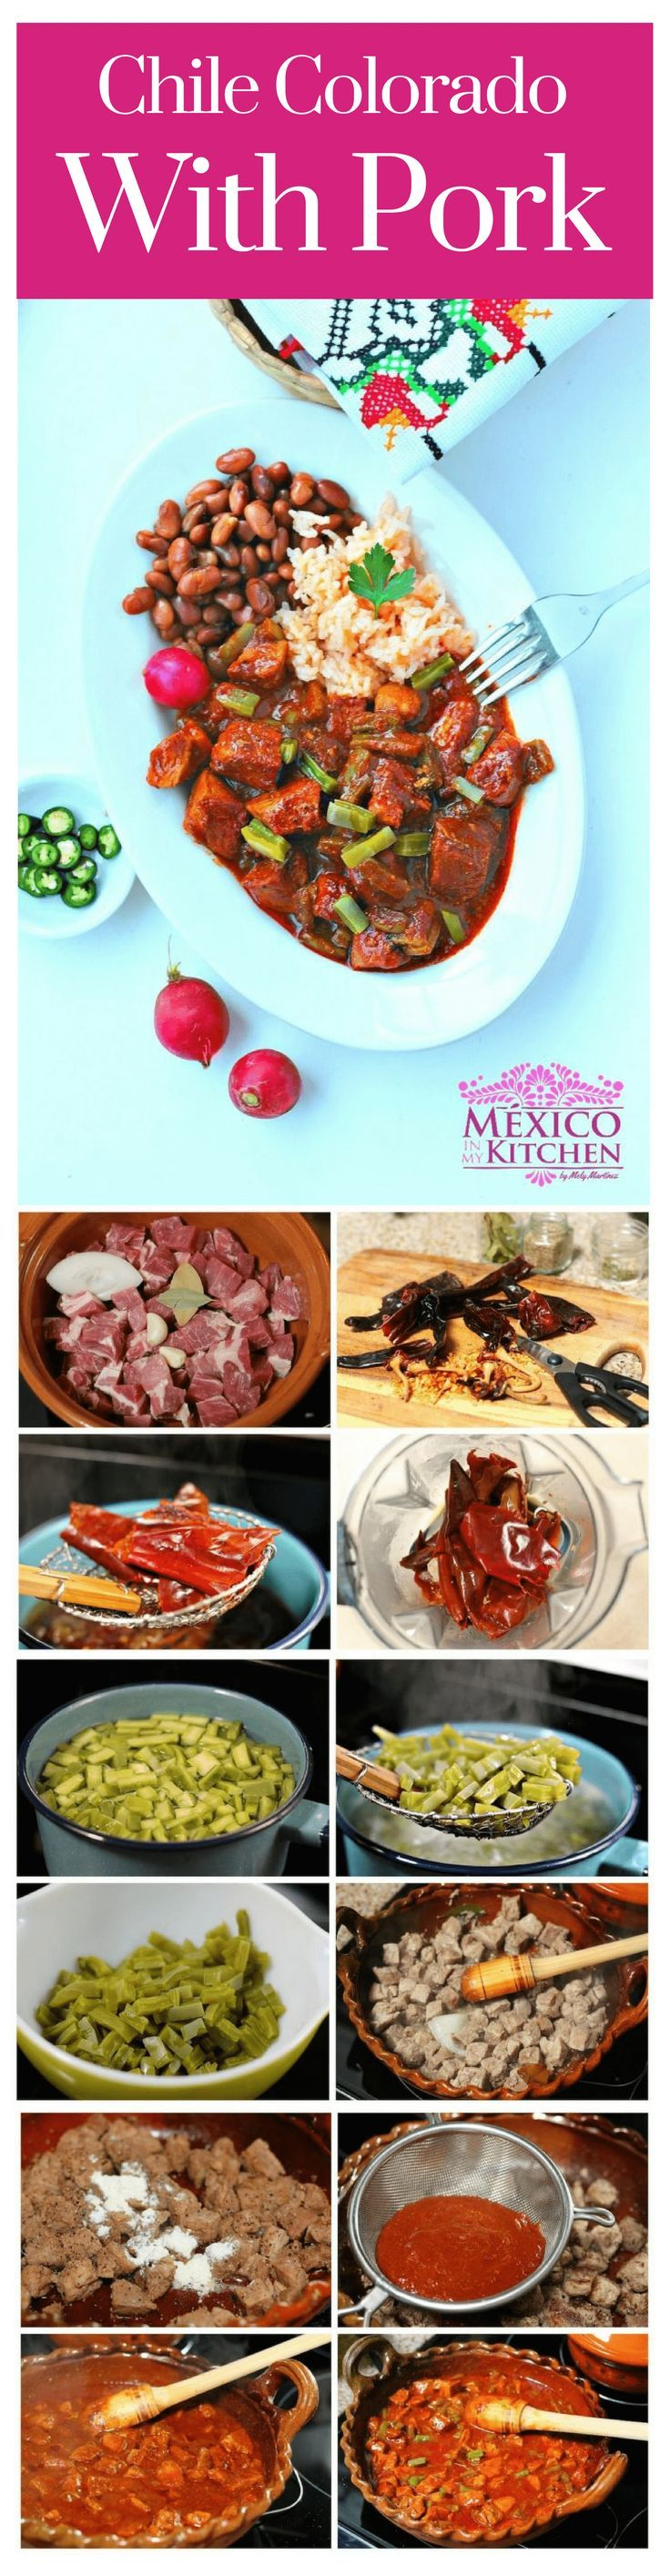 "Chile Colorado is a pepper & a dishthat is very popular in the gastronomies of the northern states of Mexico. It is also known as ""Chile de la Tierra"", ""Chile Seco del Norte"", ""Chile de Sarta"", and many other names that vary by region in that part of the country. #homecook #kitchen #pork #mexicanrecipes"